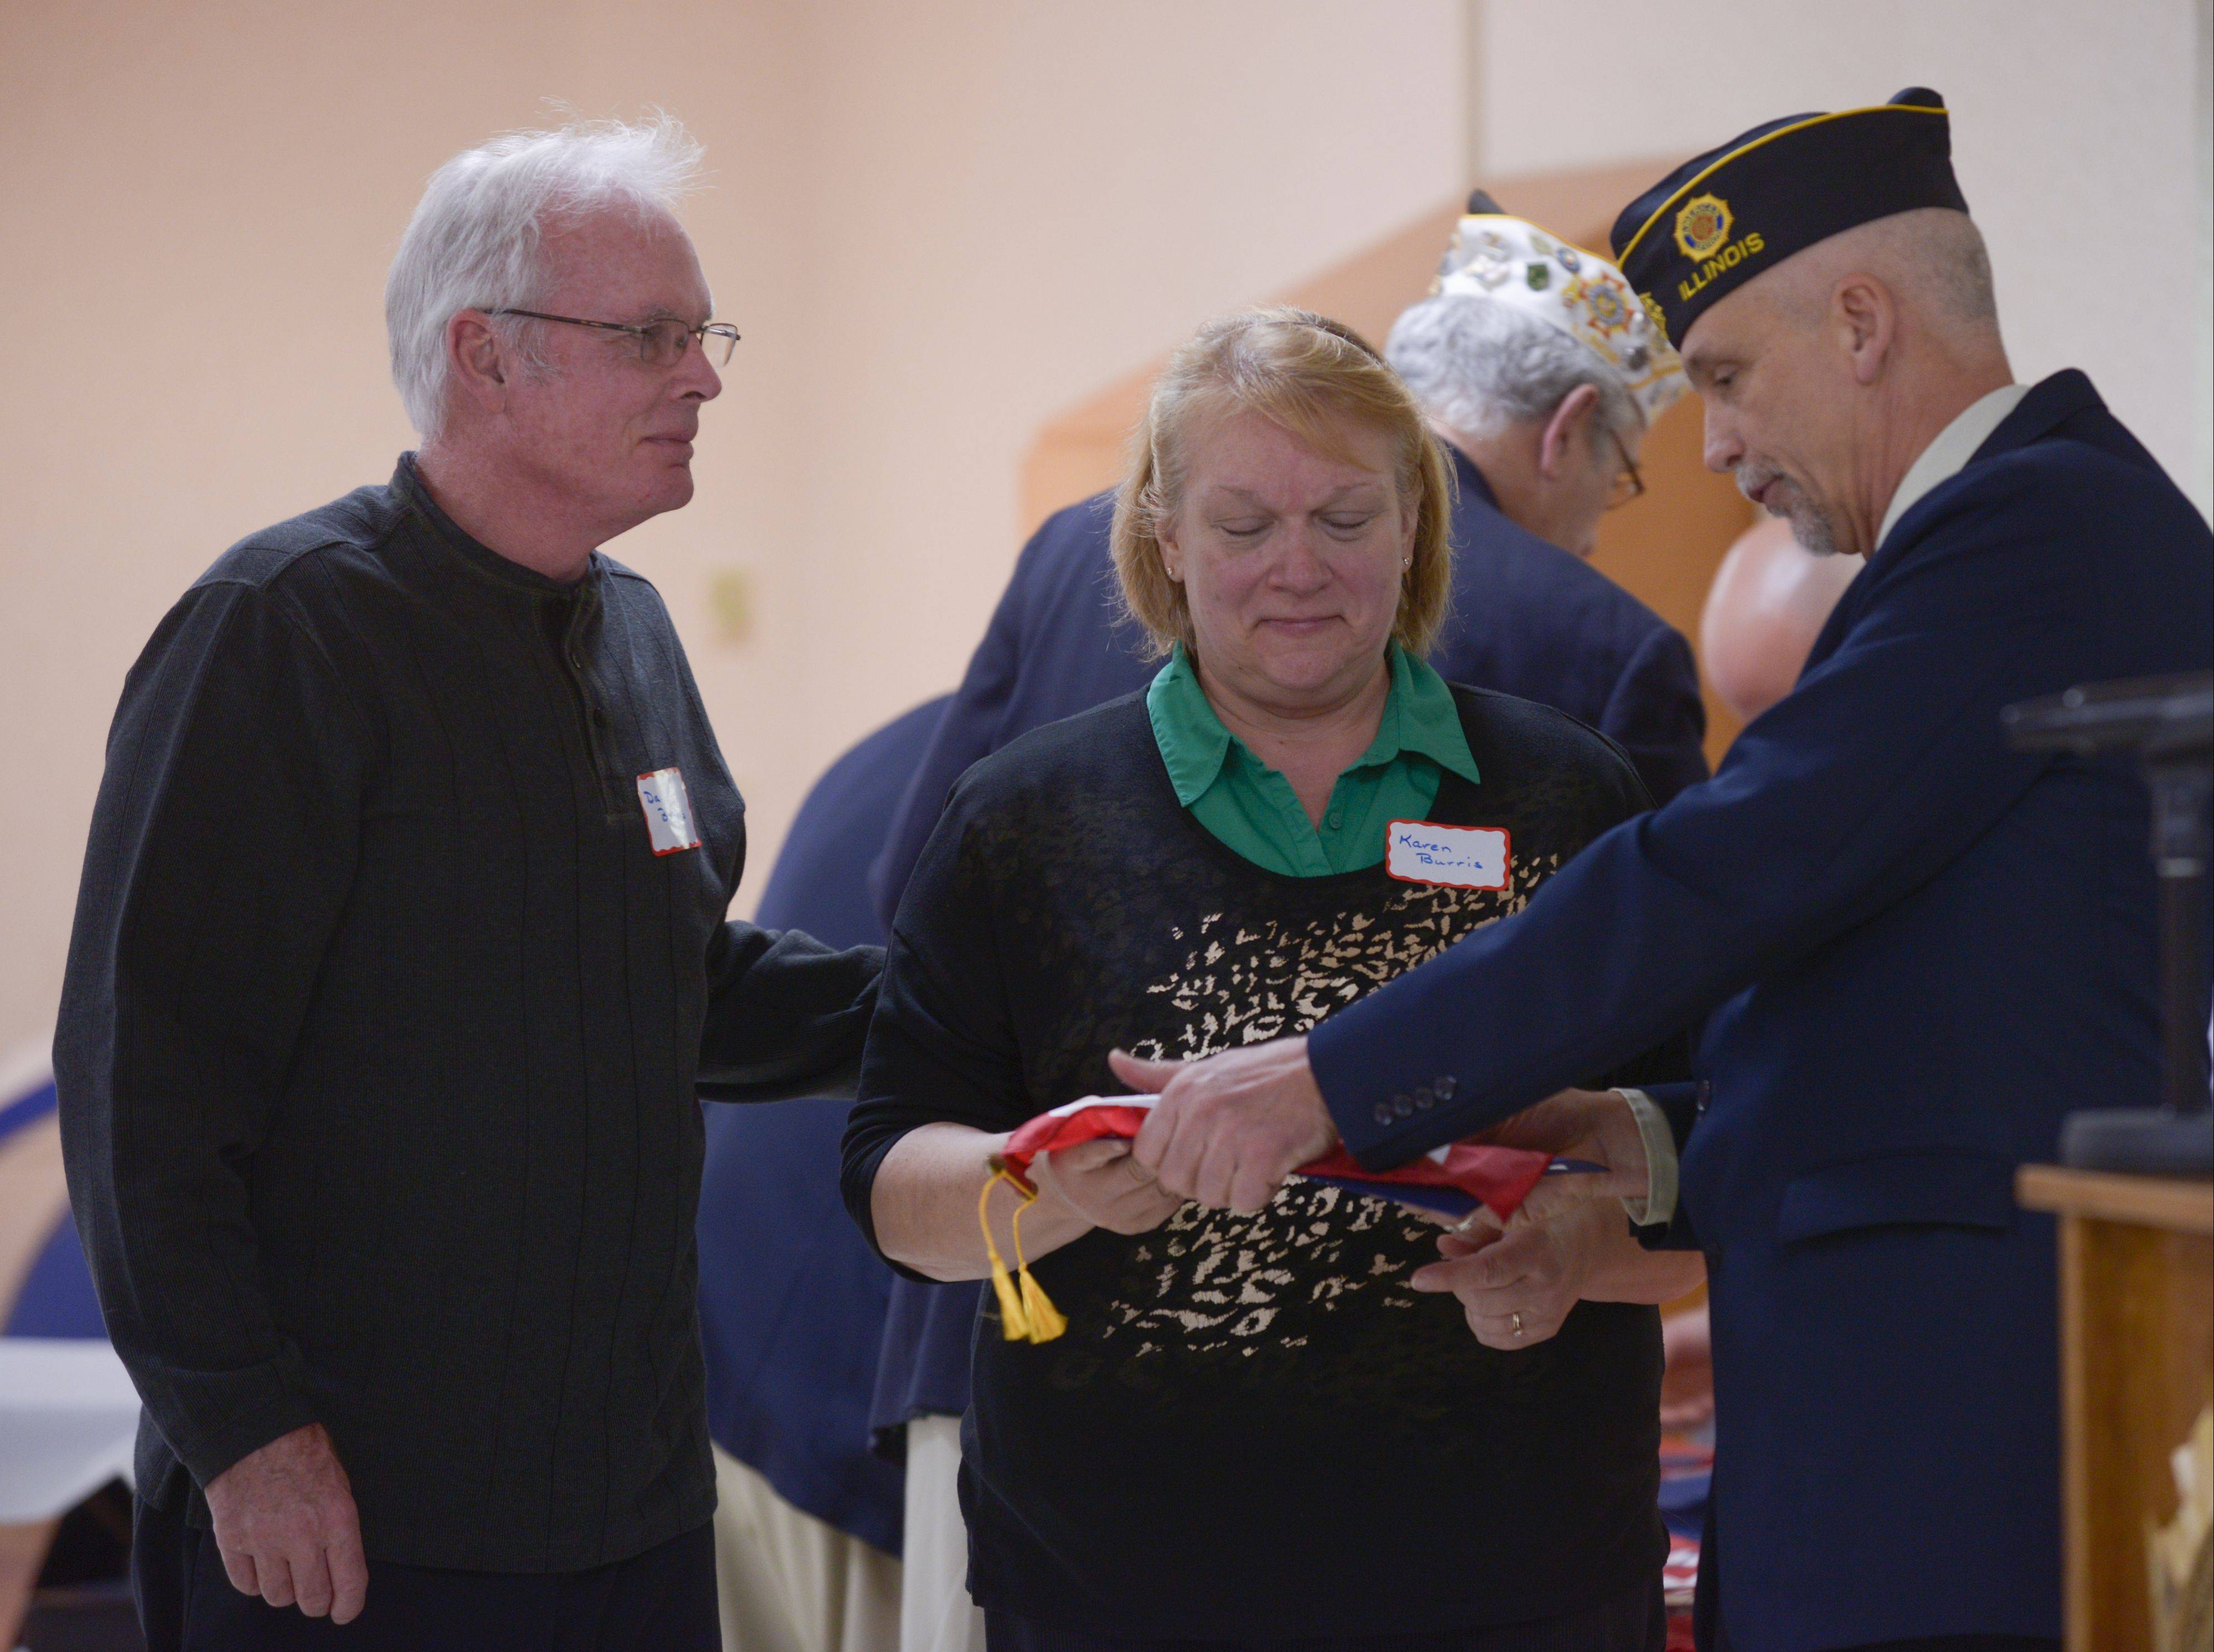 Dan and Karen Burris of Lisle, whose son Ryan is serving in the U.S. Navy, receive a Blue Star Service Banner Sunday at VFW Post 3873 in Naperville from Glenn Granat of American Legion Post 43.